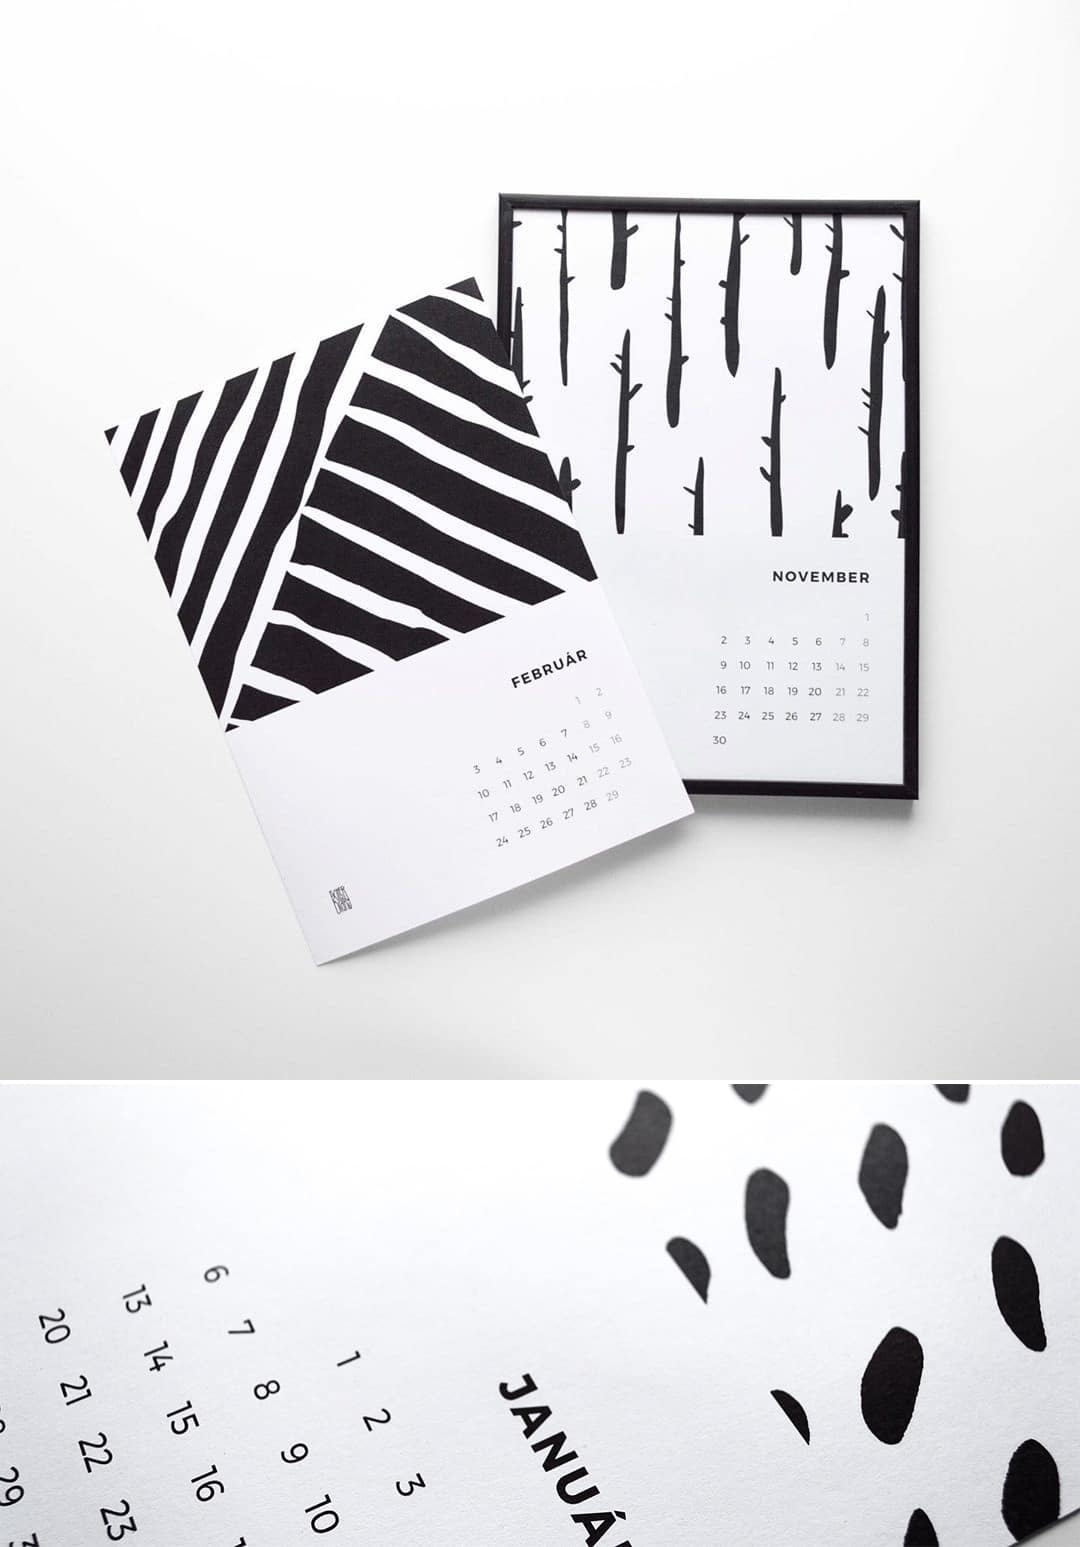 Create your own calendar in 2020 - downloadable blank calendar template | Exiter Diary